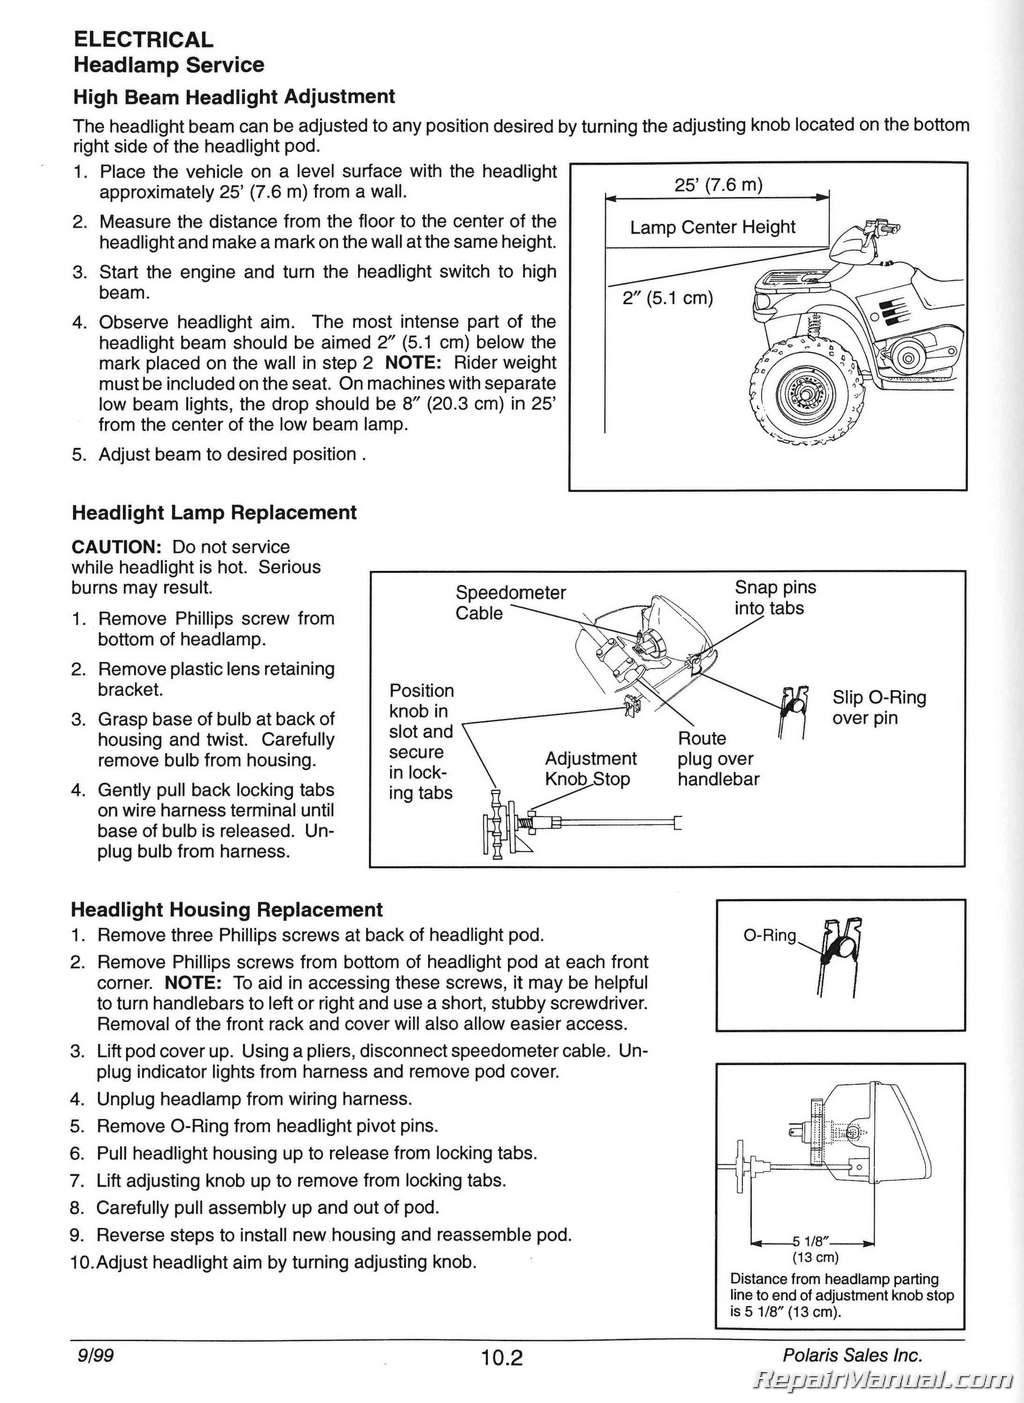 2000 Polaris Sportsman 500 Wiring Diagram Diagrams Scematic Starter Solenoid On 2004 Arctic Cat 400 1996 335 Atv Service Manual 450